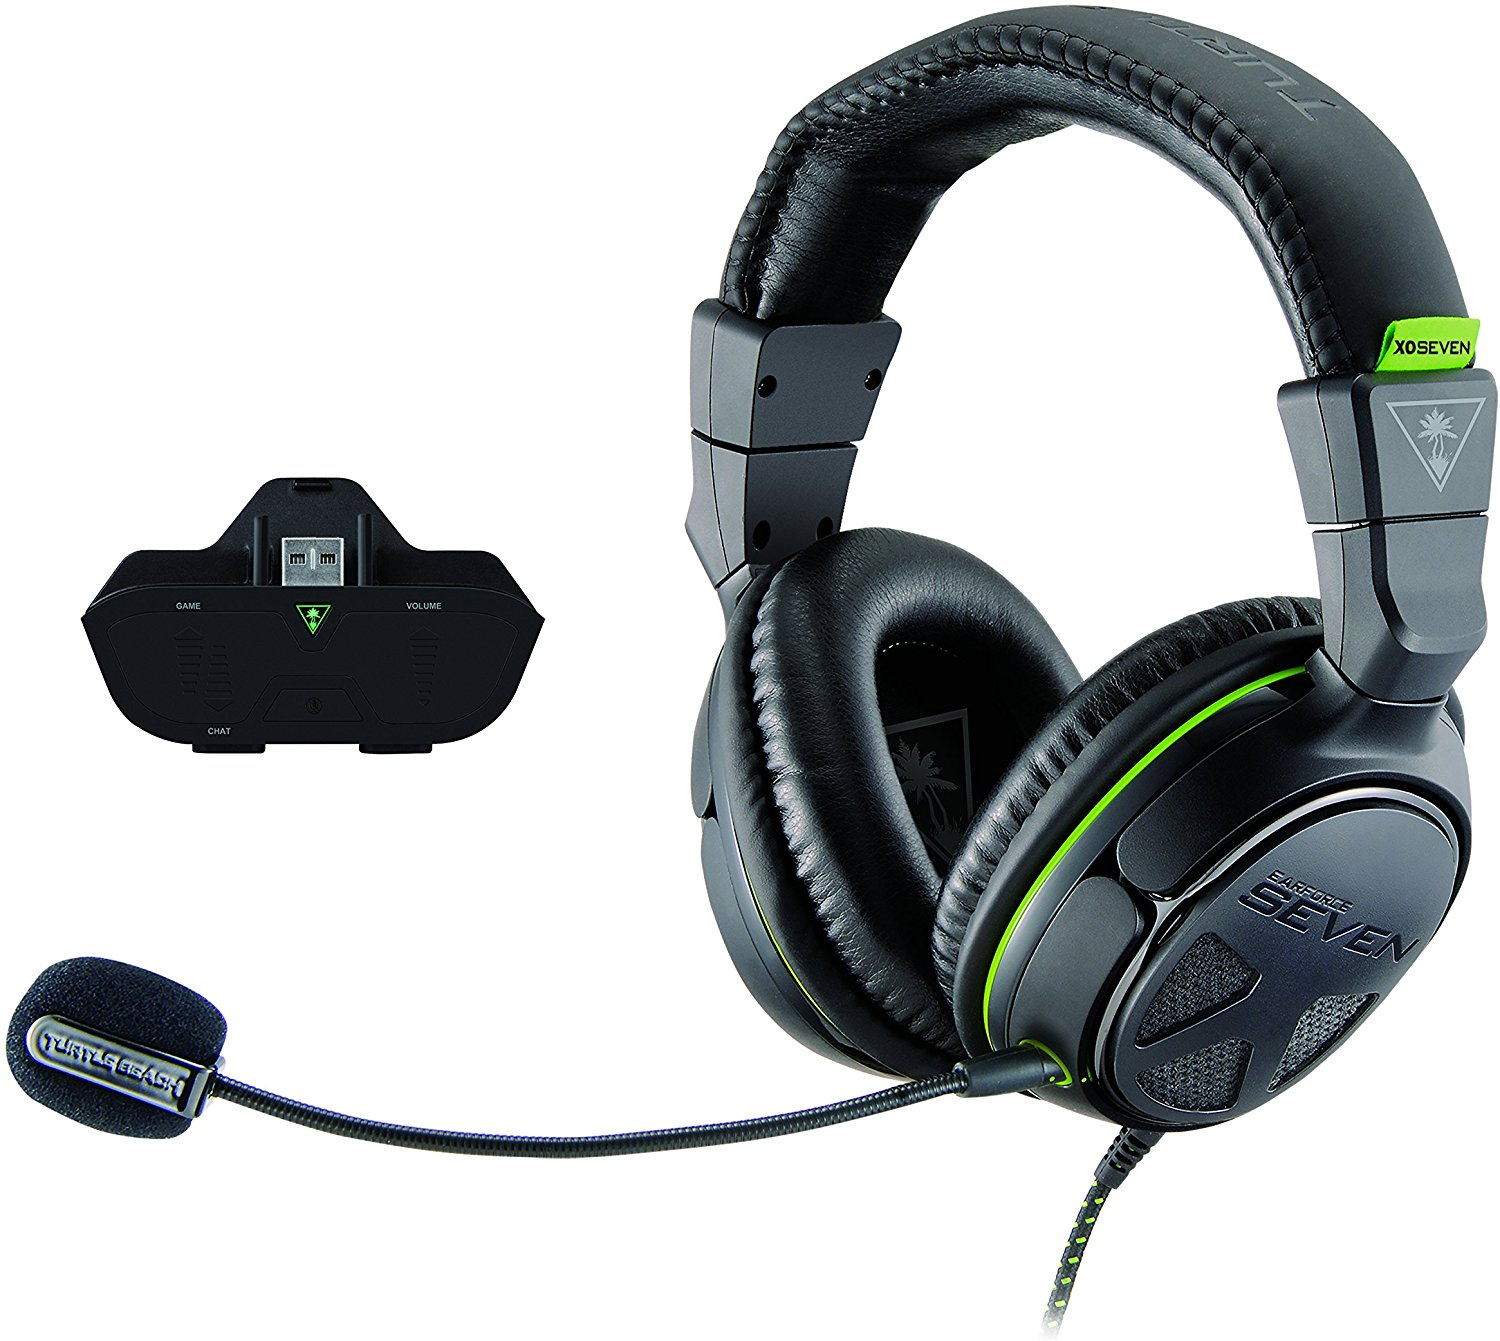 Turtle Beach - Ear Force XO Seven Pro Premium Gaming Headset - Superhuman Hearing - Xbox One